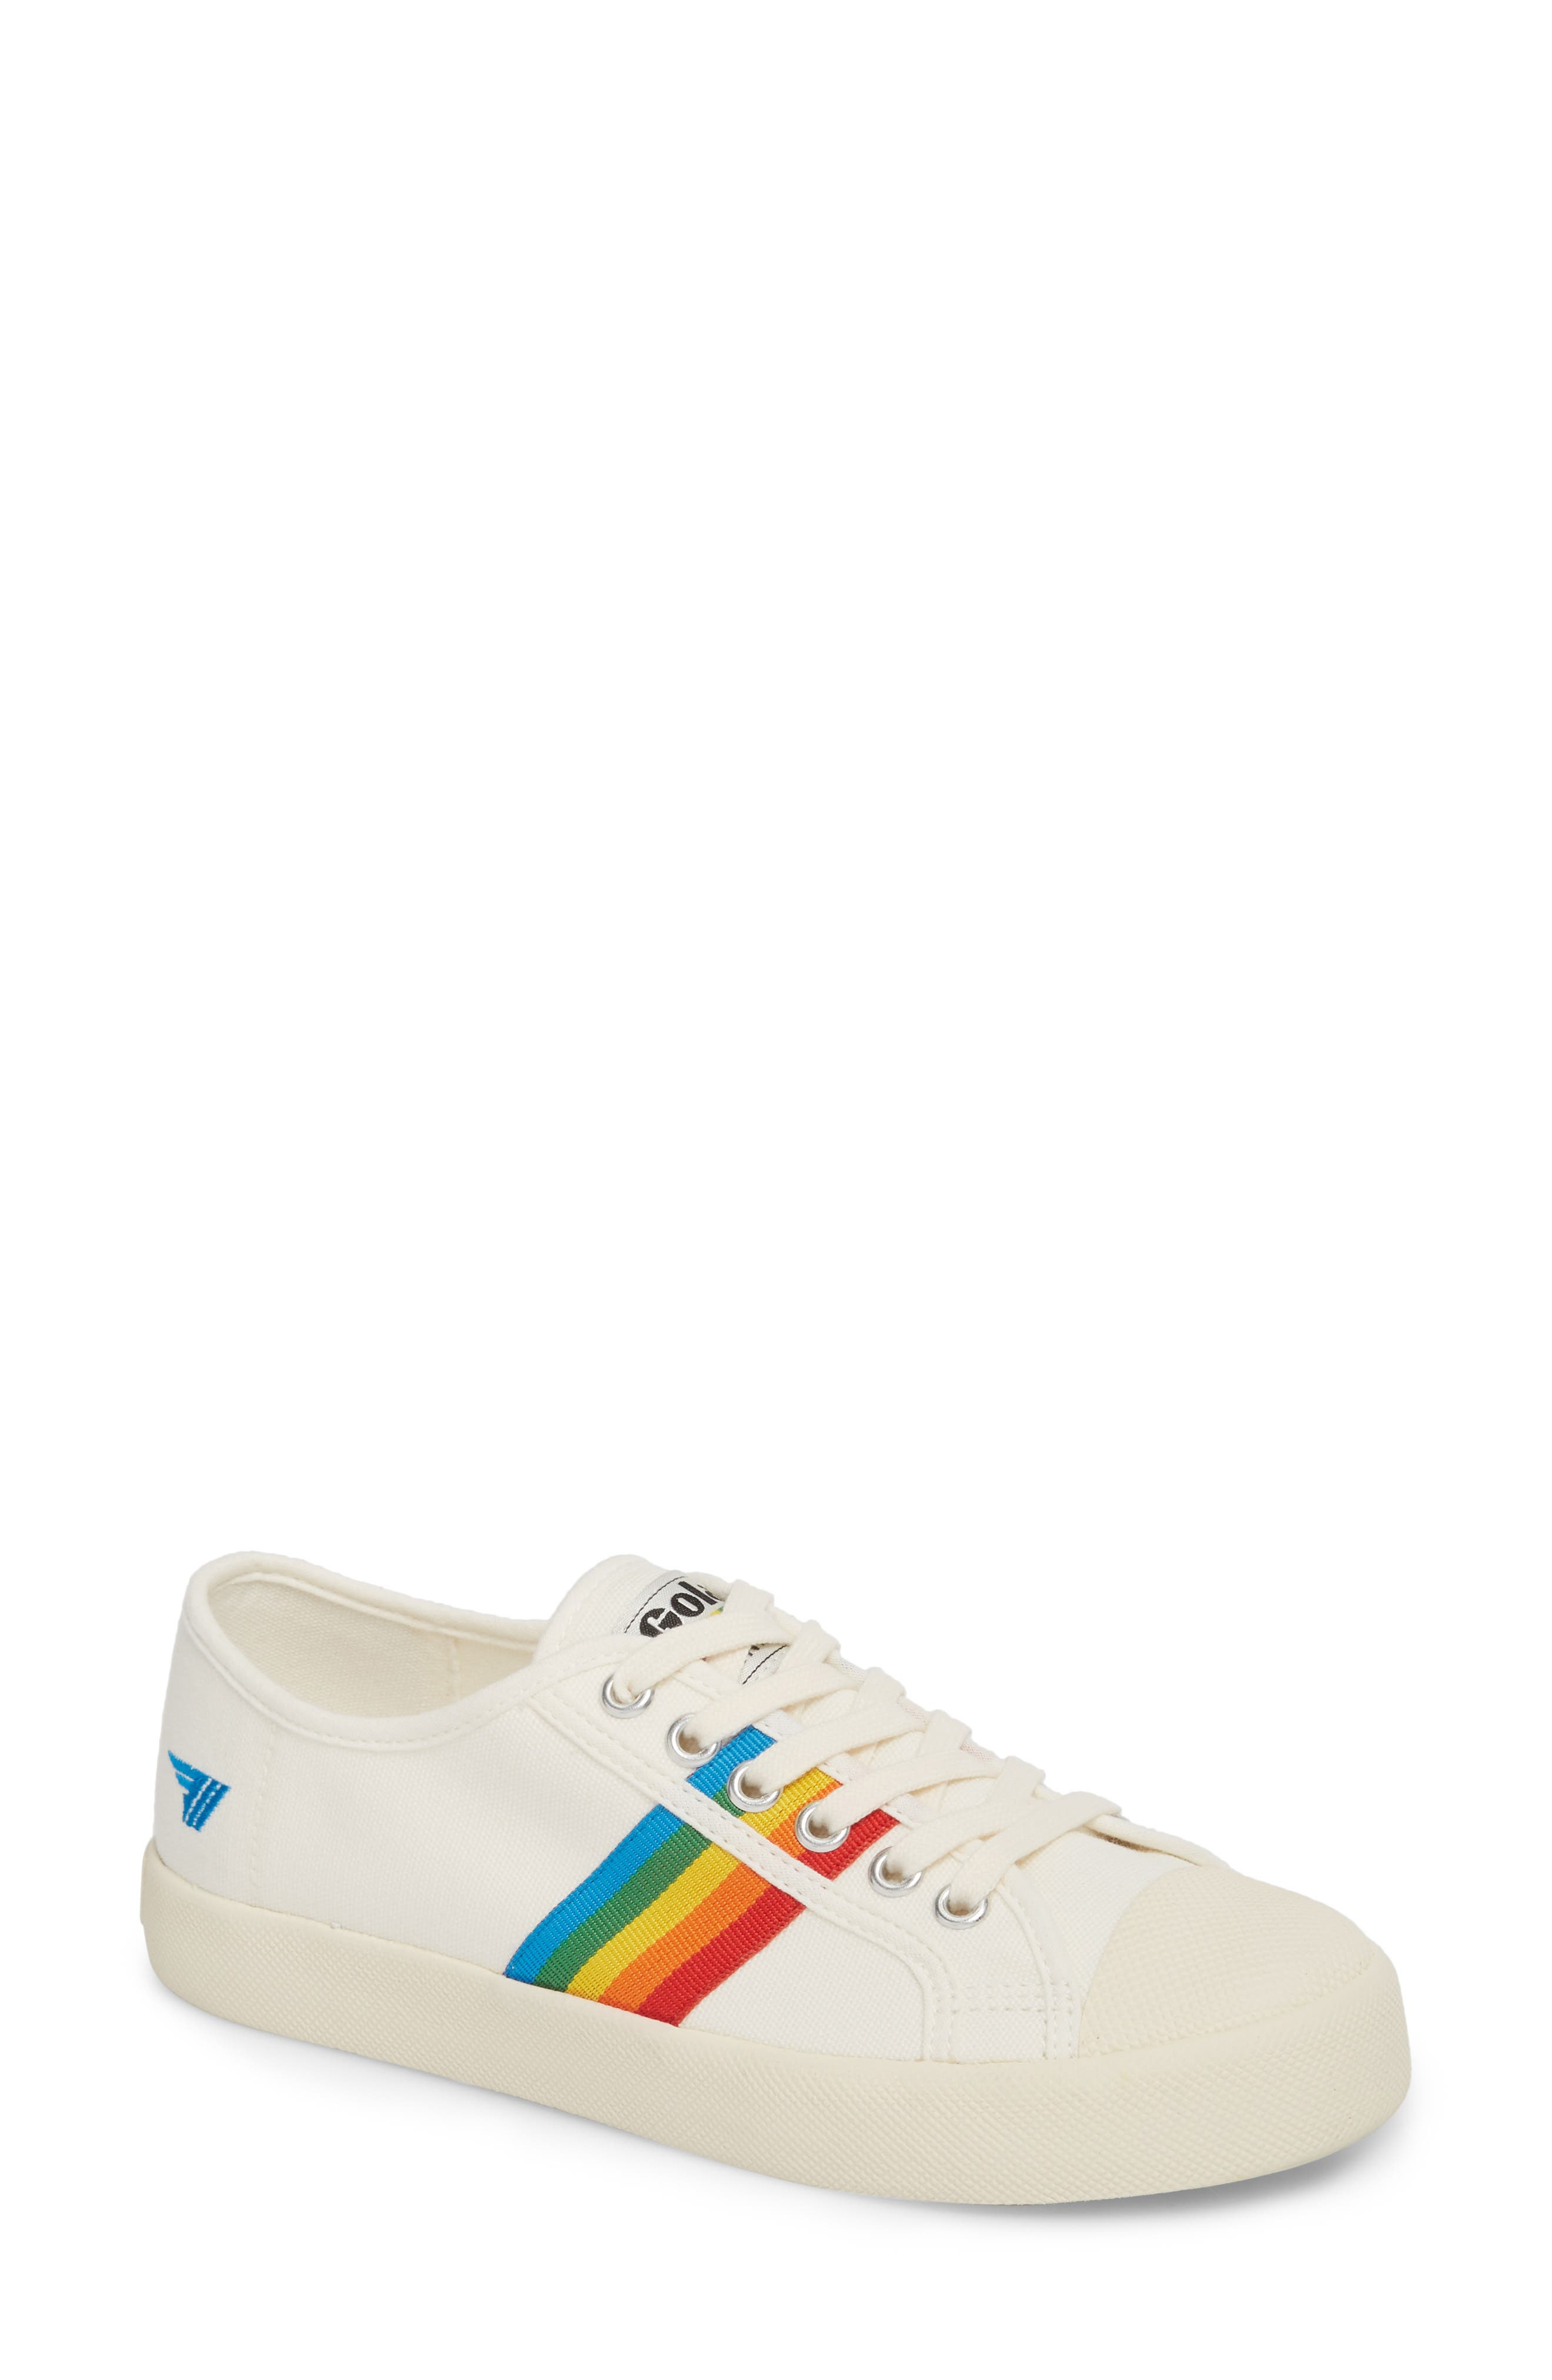 Coaster Rainbow Striped Sneaker,                             Main thumbnail 1, color,                             OFF WHITE/ MULTI CANVAS